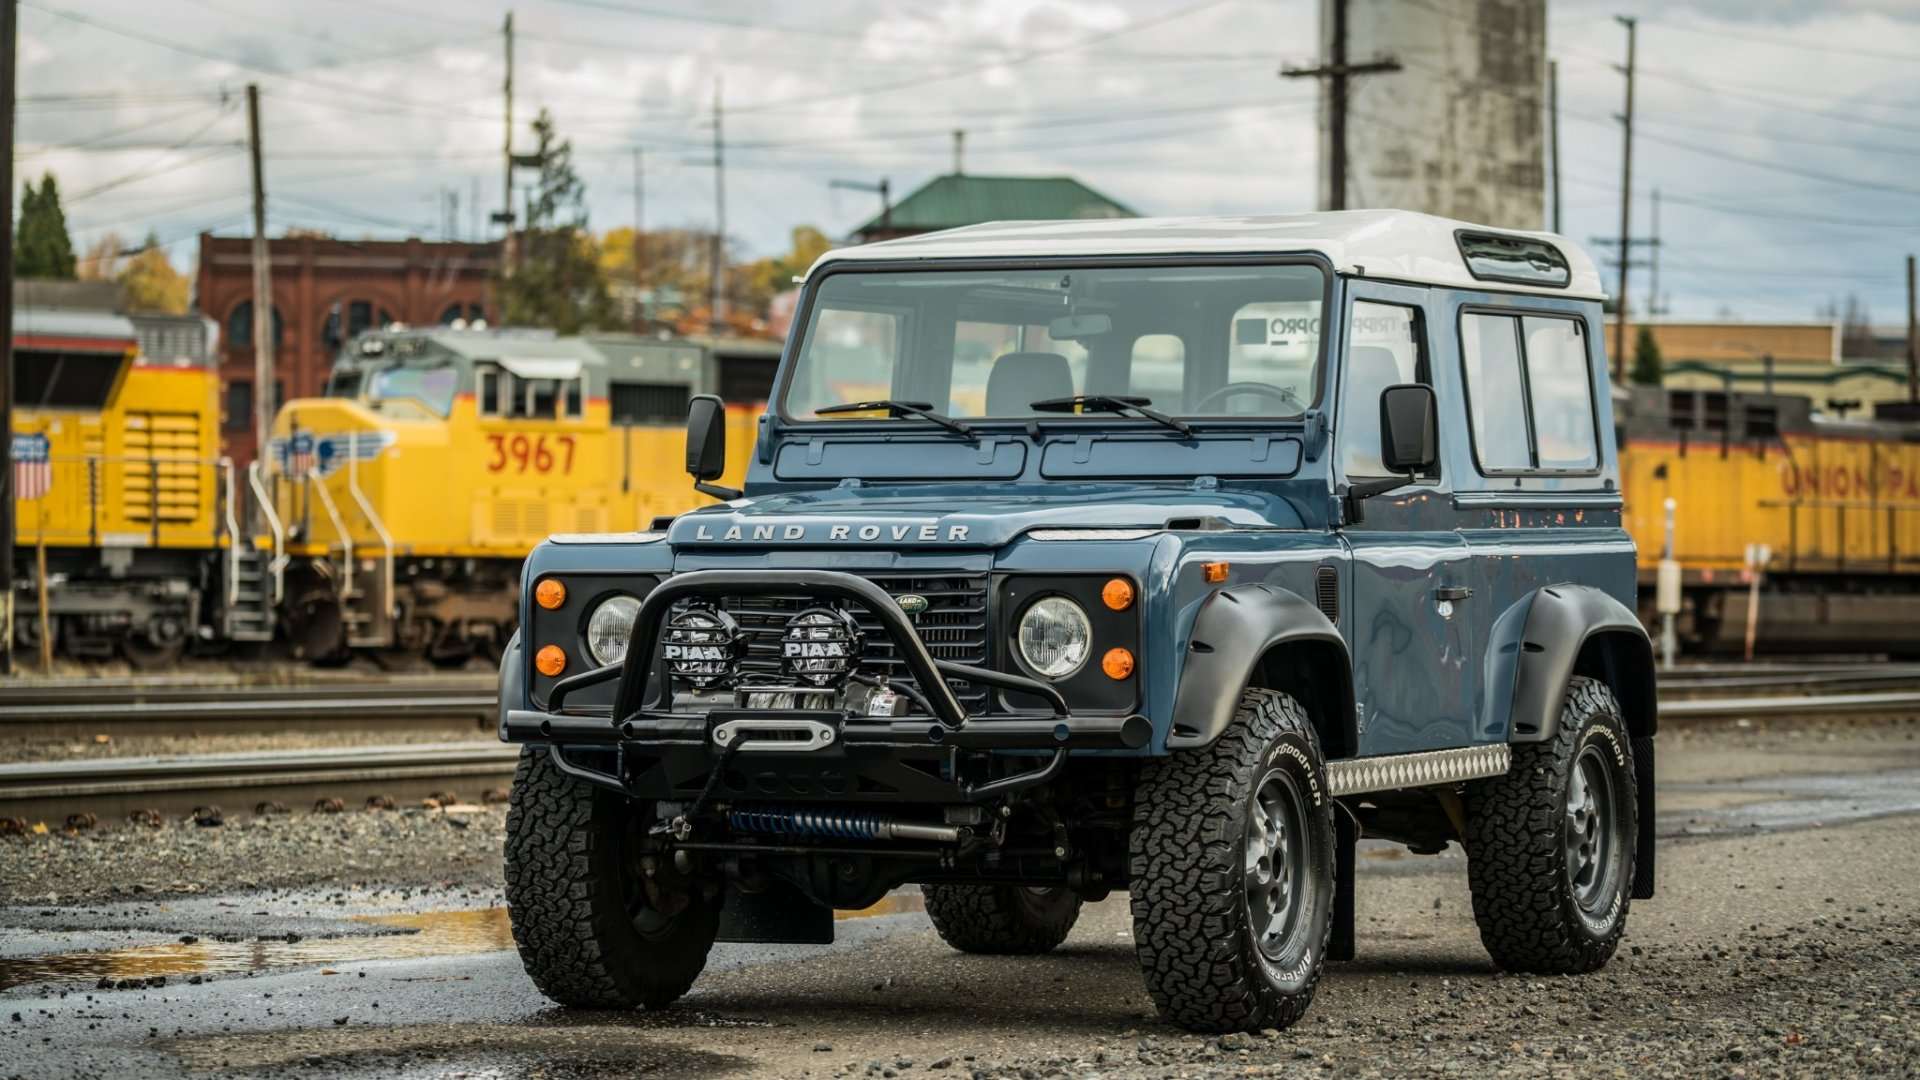 Véhicules - Land Rover Defender  Land Rover Defender 90 Off-Road Blue Car Old Car Voiture Fond d'écran